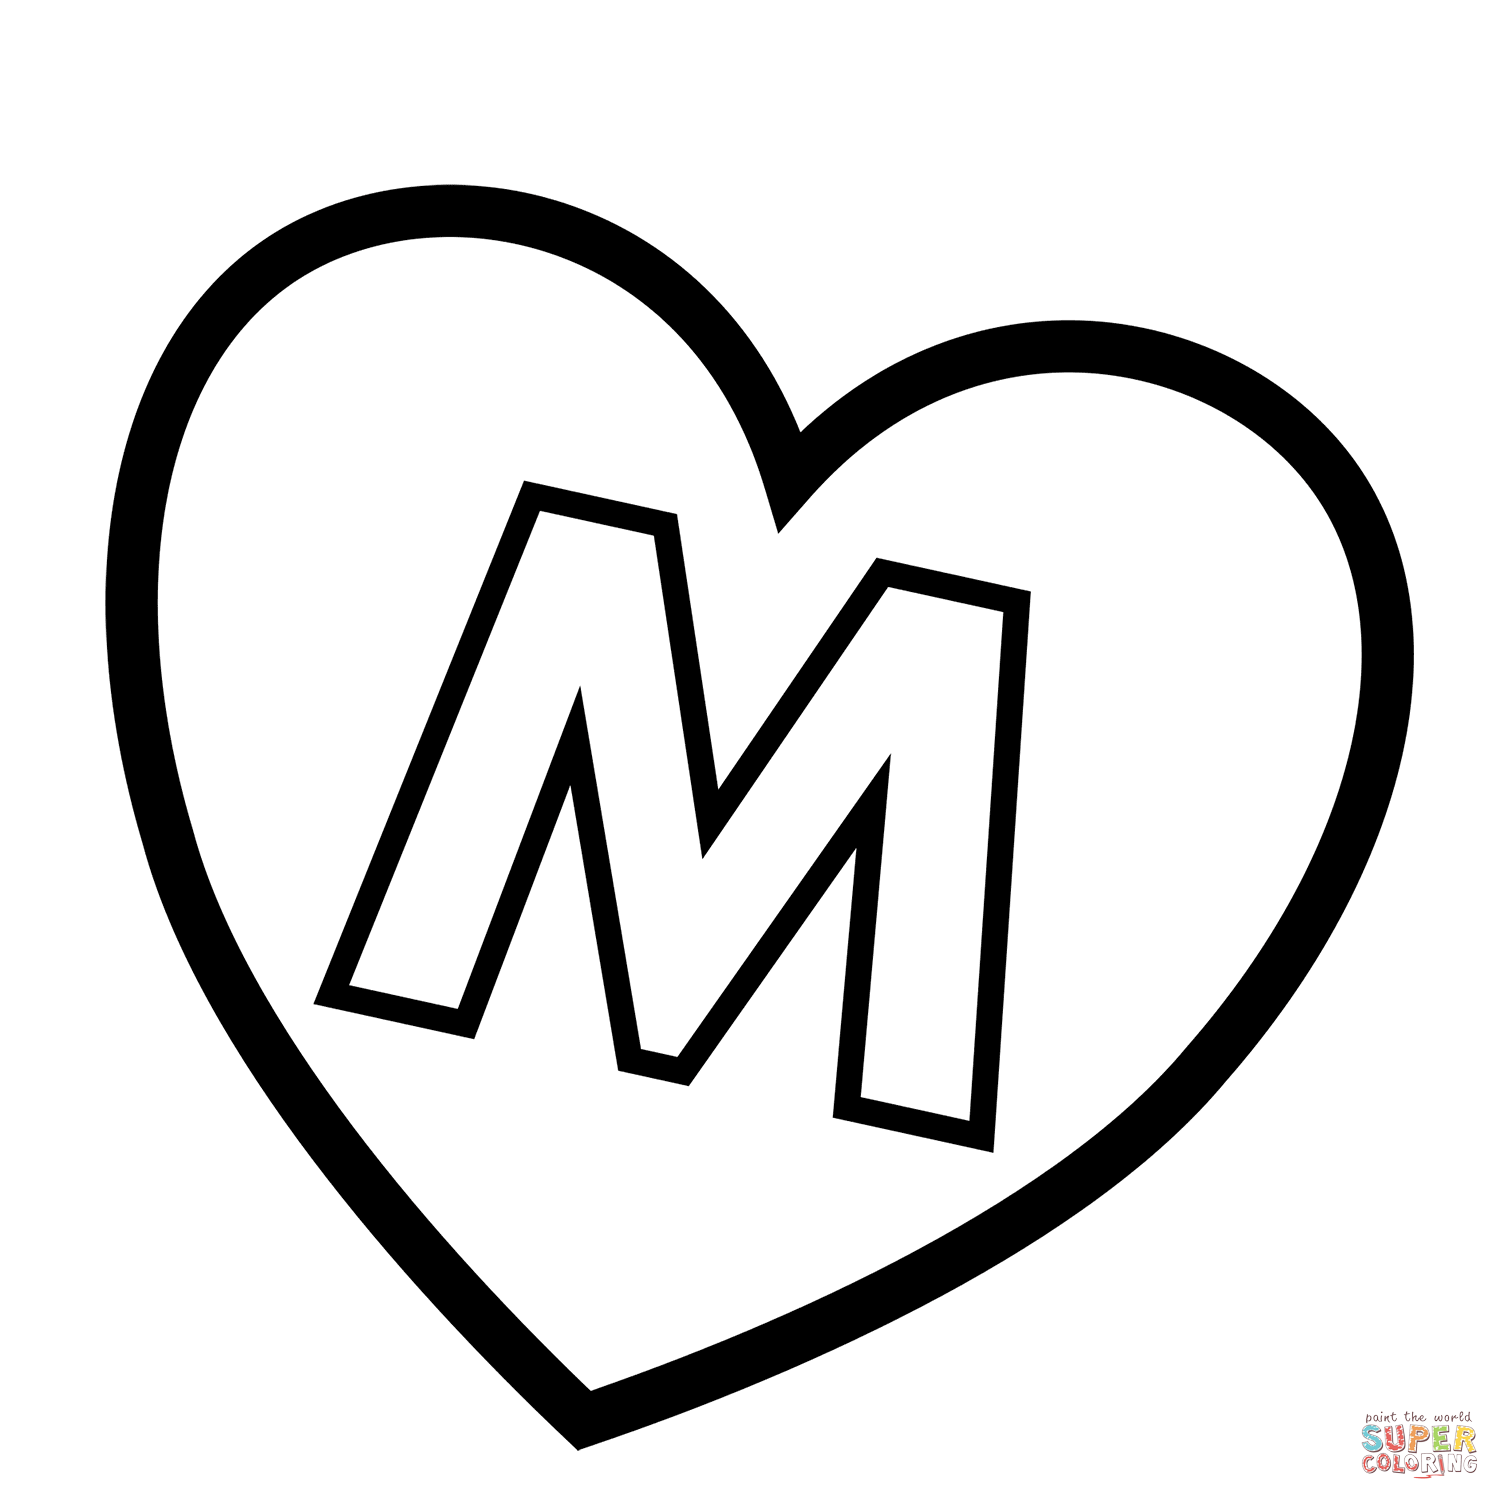 Letter M In Heart Coloring Page Free Printable Coloring Pages Heart Coloring Pages Lettering Alphabet Coloring Pages